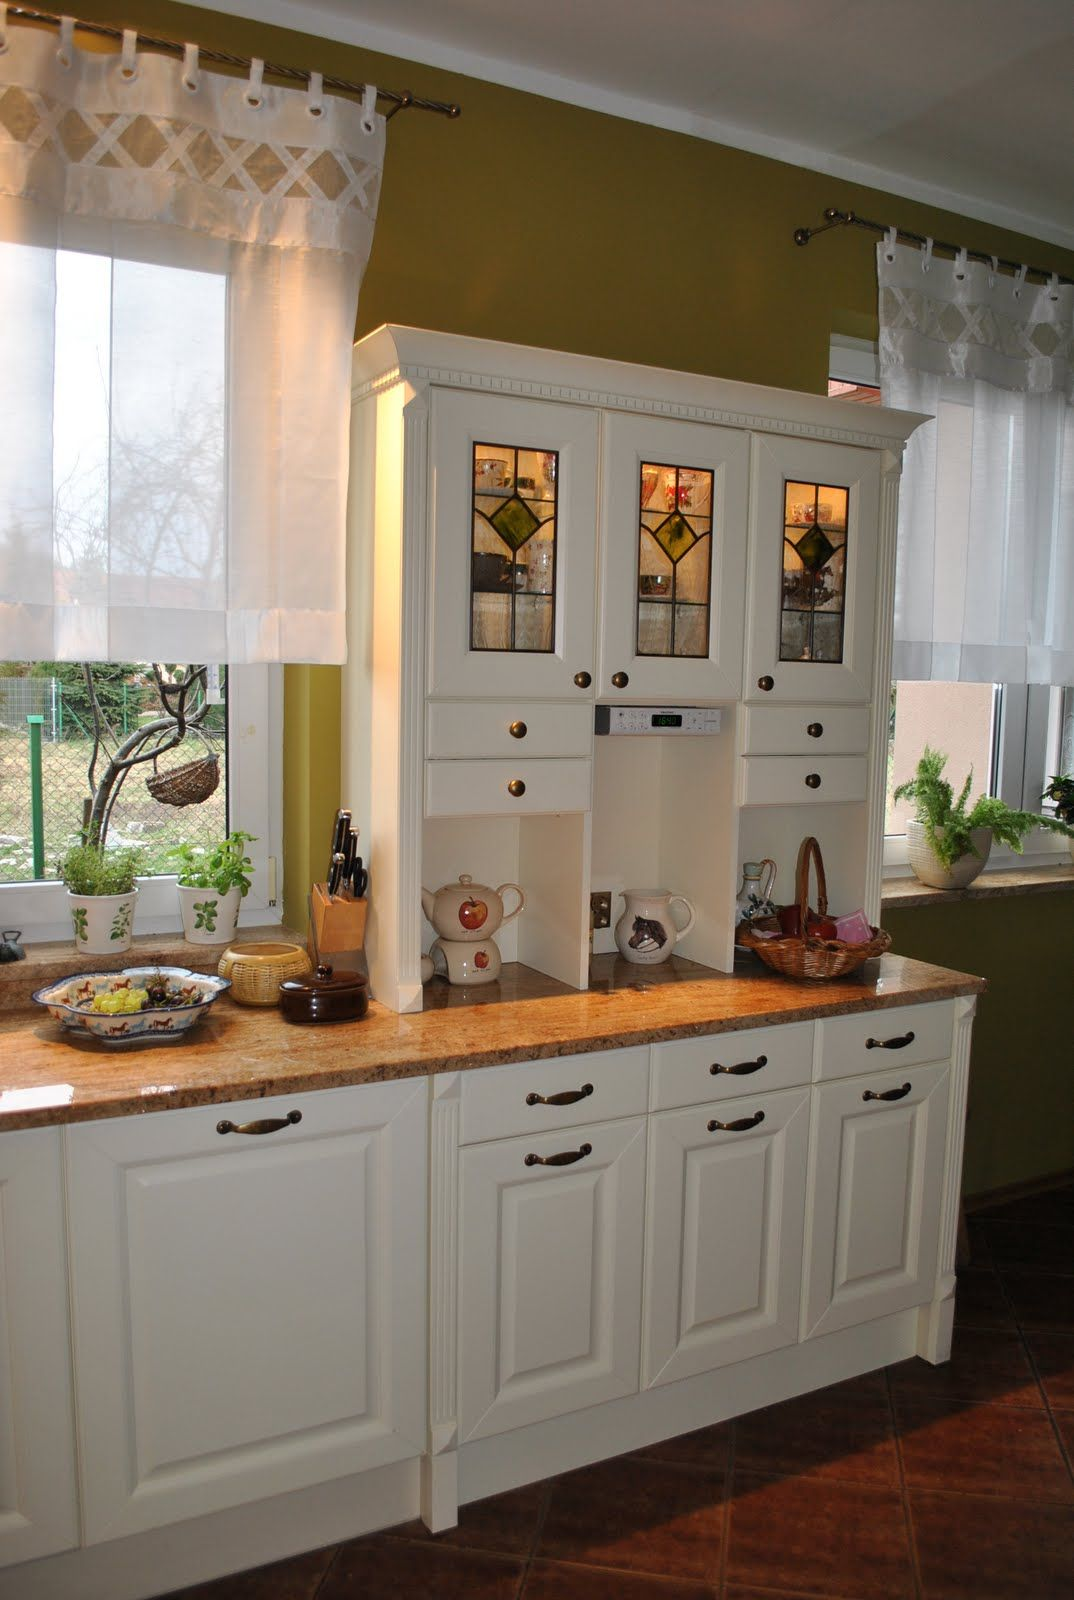 Image of country style kitchen cupboards on inspiring - Country style kitchen cabinets design ...